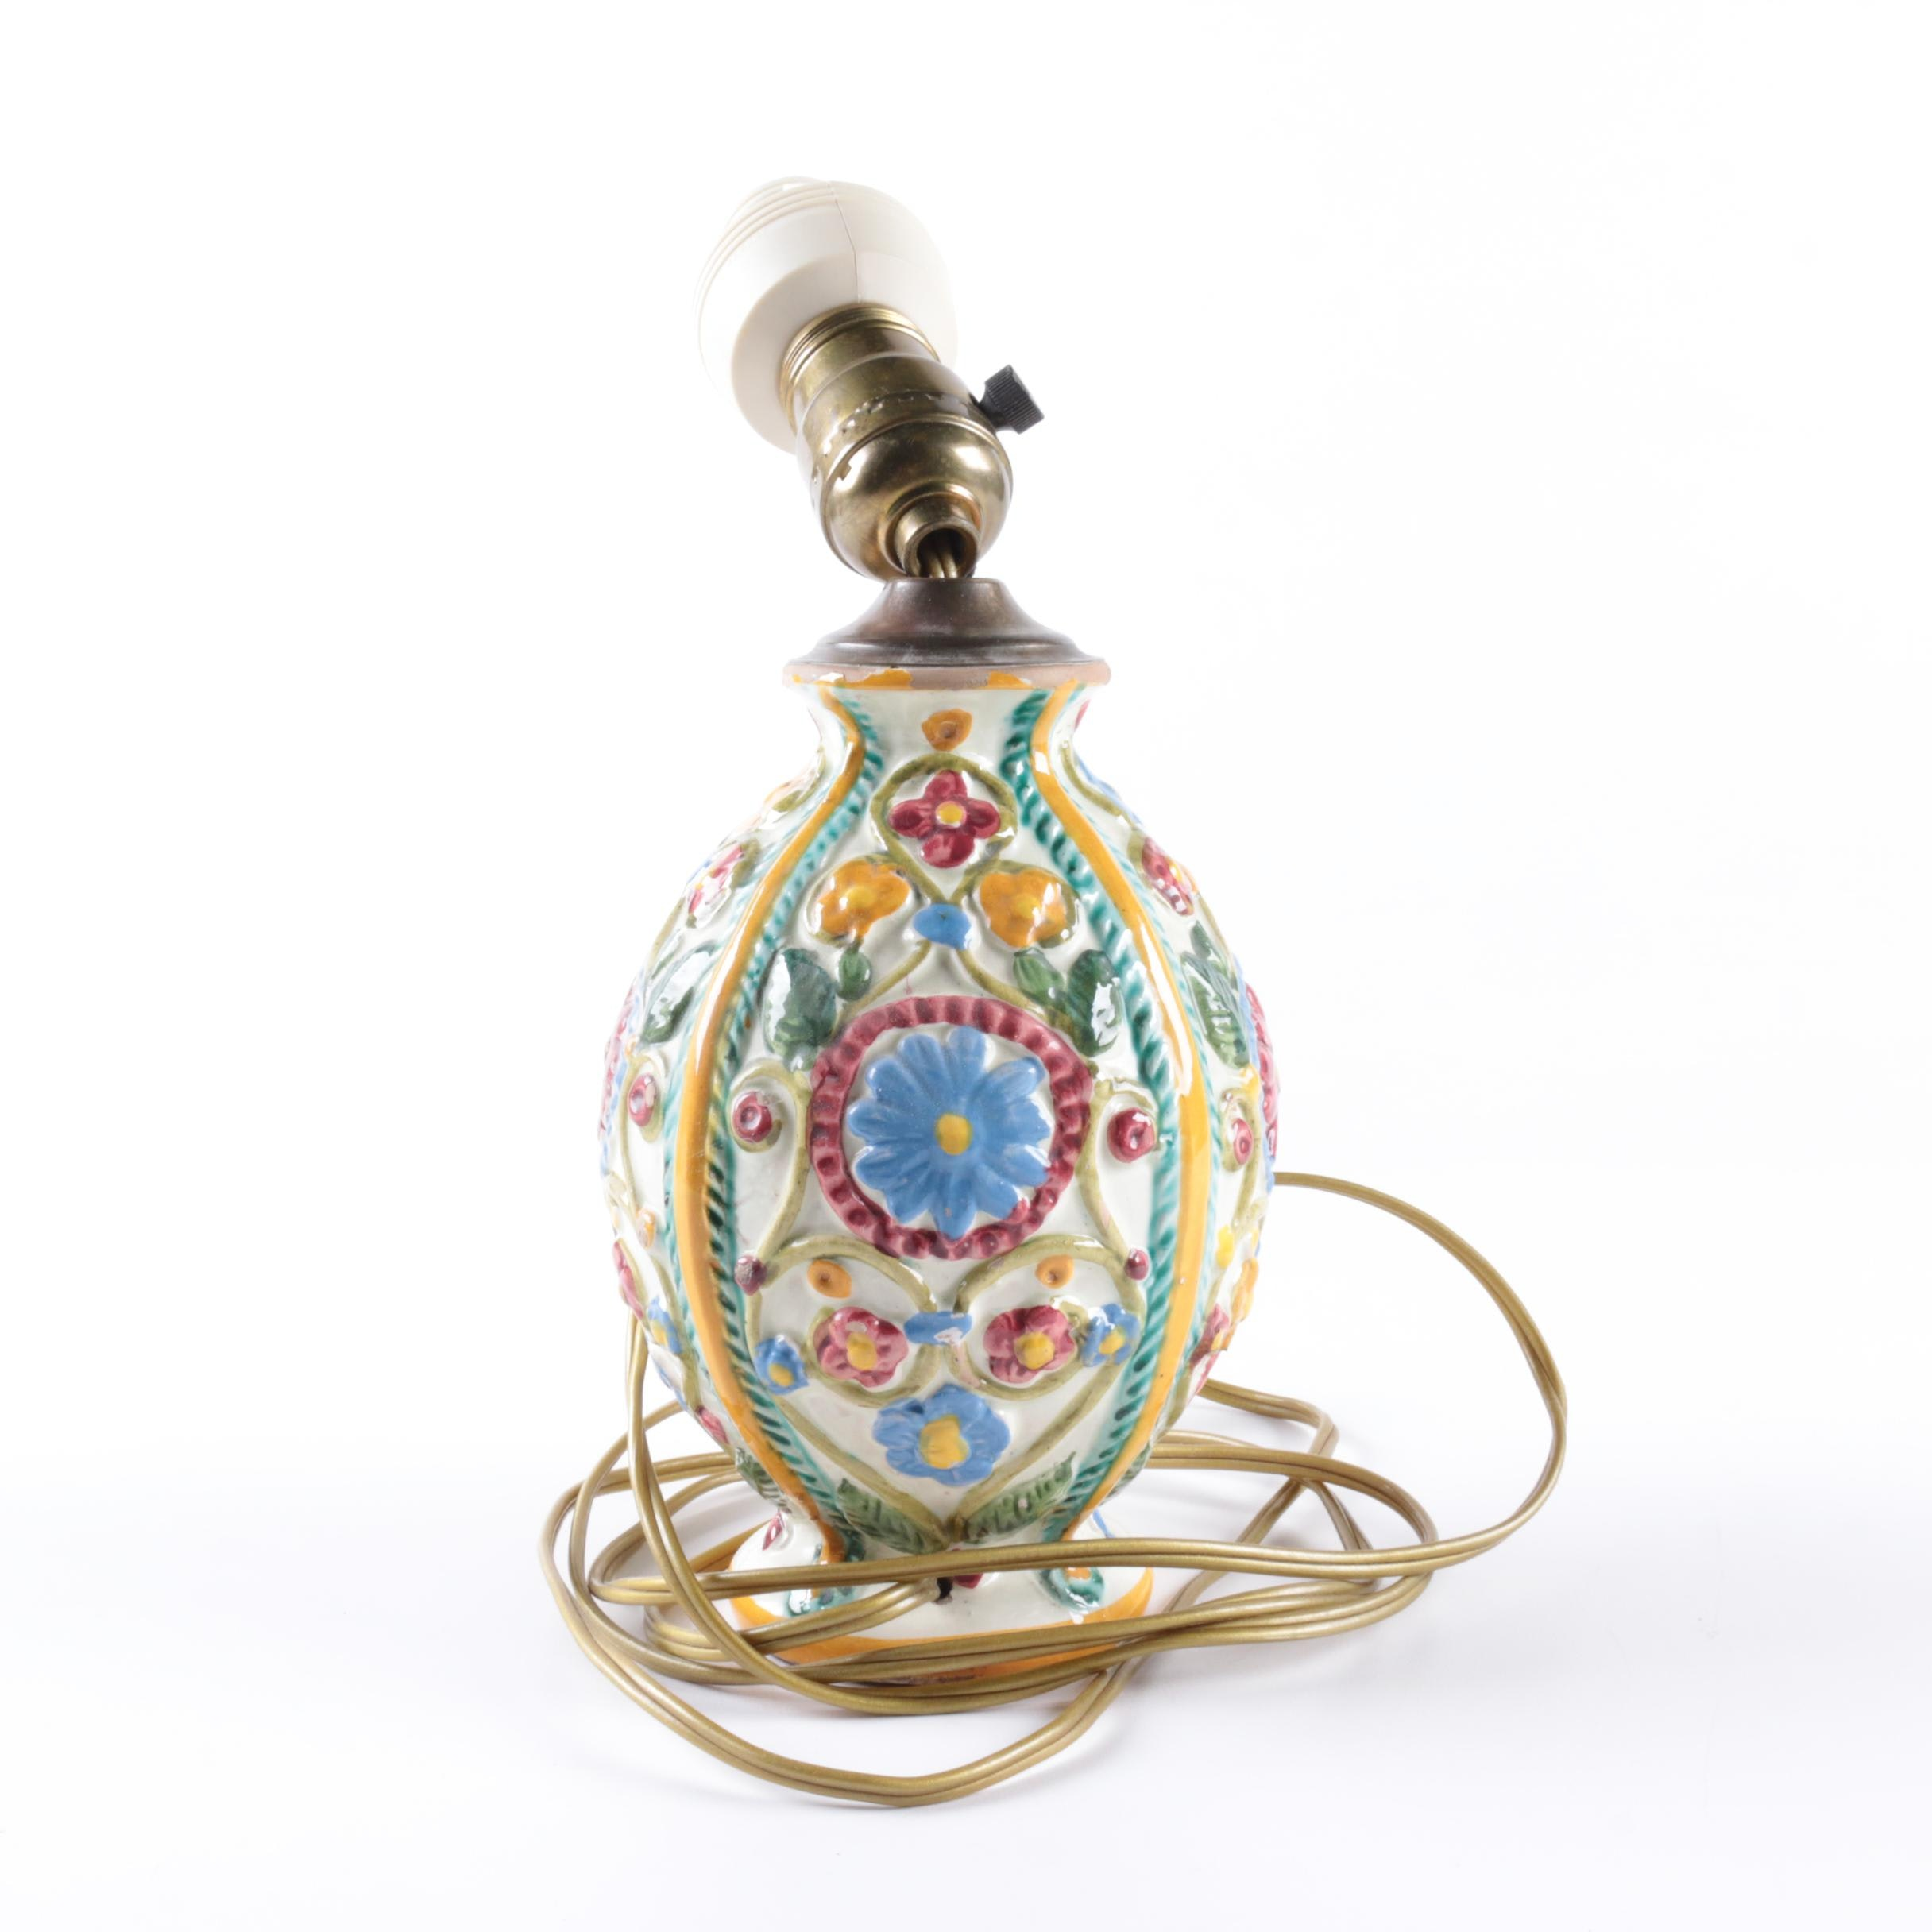 Hand-Painted Italian Ceramic Table Lamp with Floral Decoration